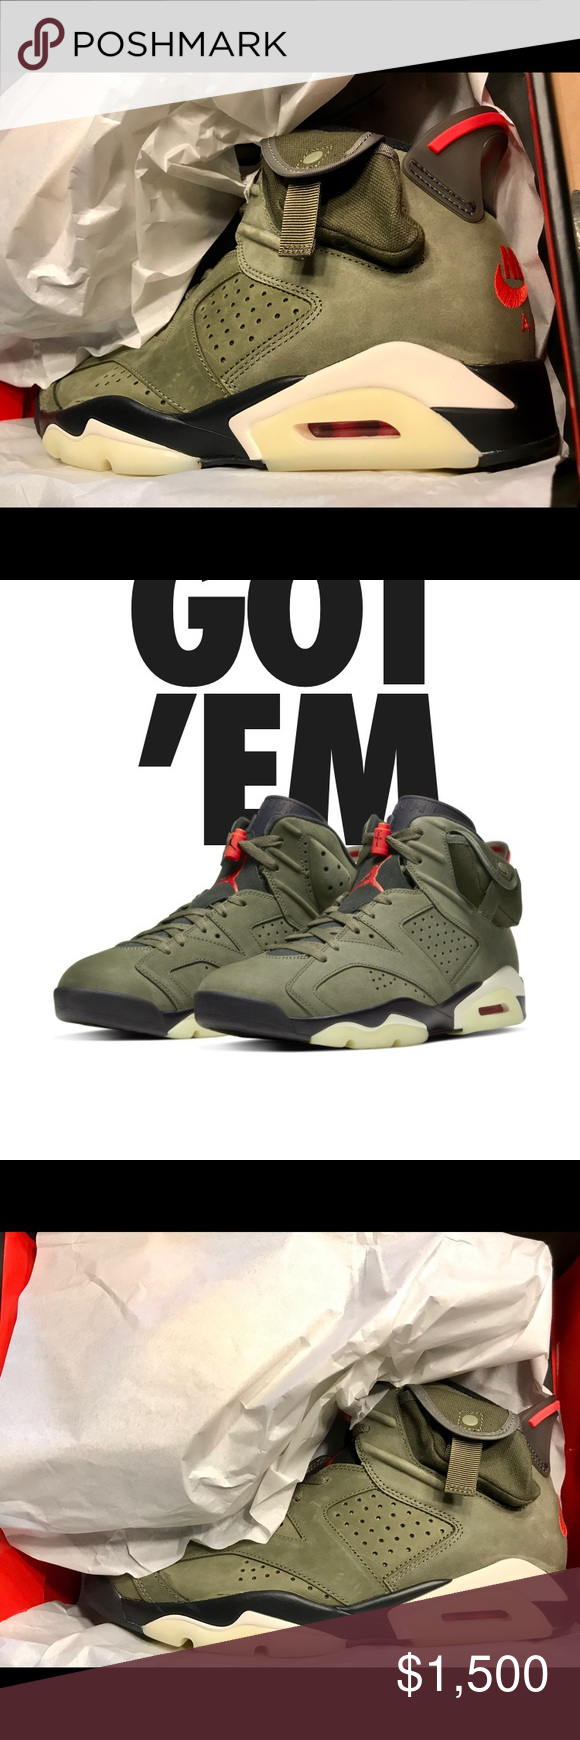 DS Nike Air Jordan 6 Travis Scott Cactus Jack 10.5 Won